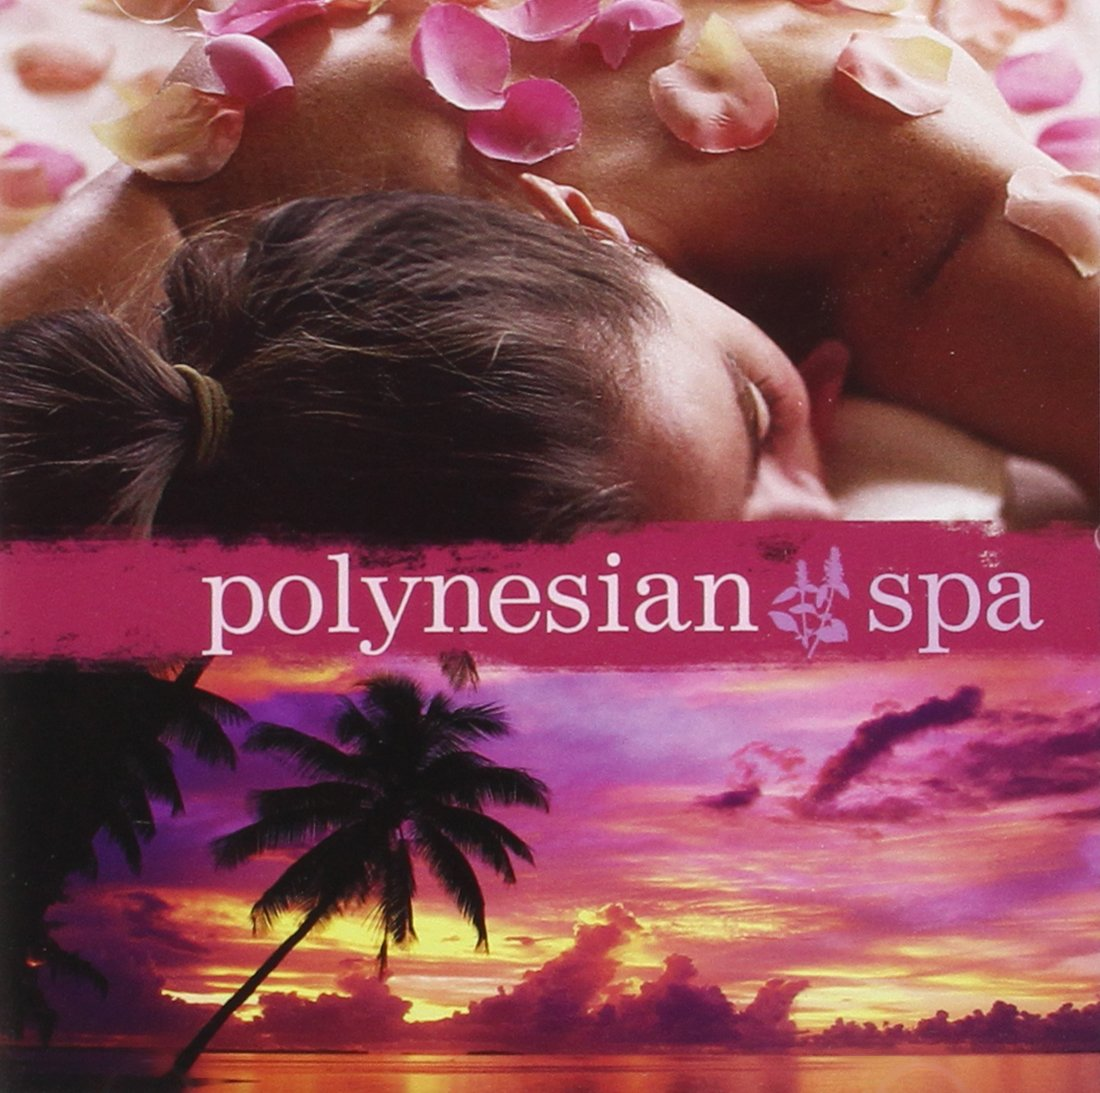 Polynesian Spa by Solitudes